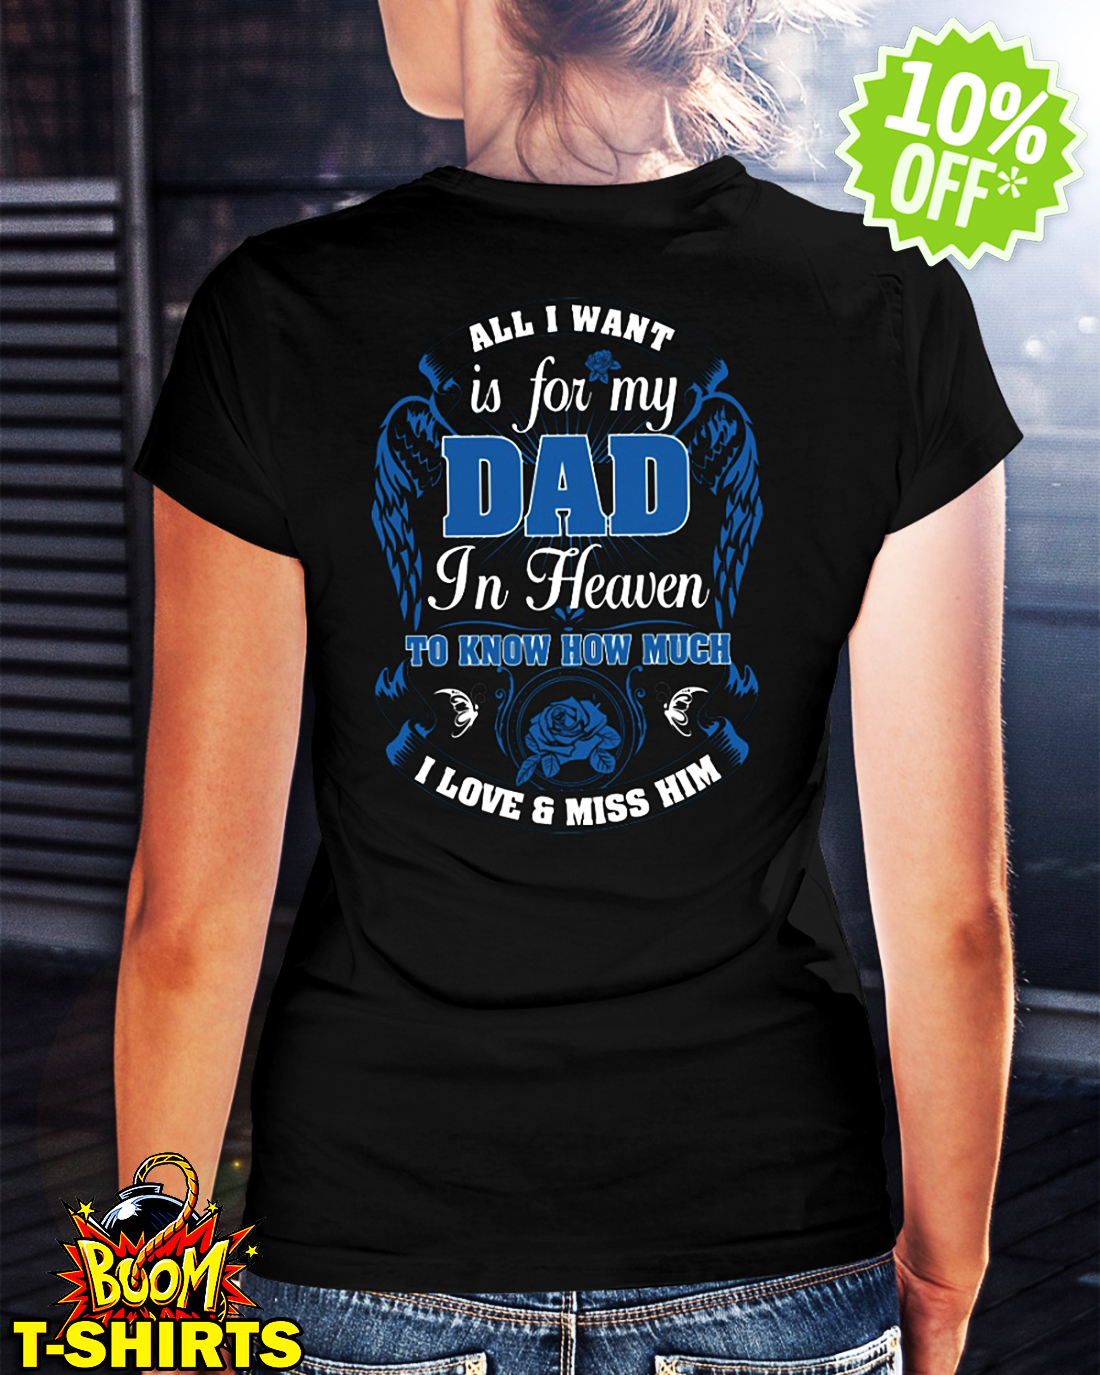 878a0959 Back Design) All I Want Is for My Dad in Heaven to Know How Much I ...